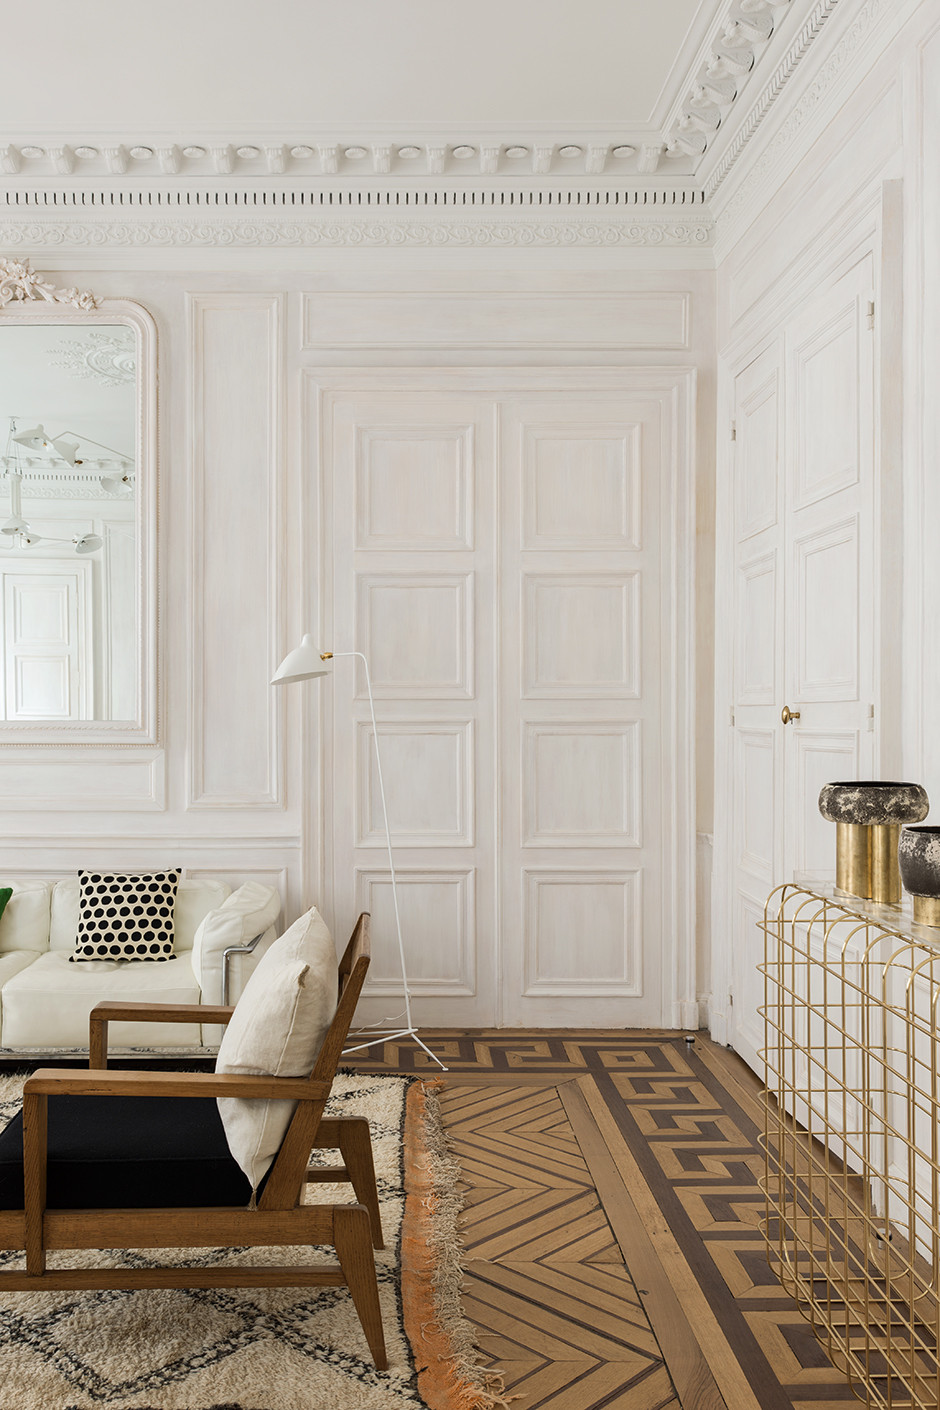 Décor Inspiration: A Paris Apartment Designed by Alireza Razavi